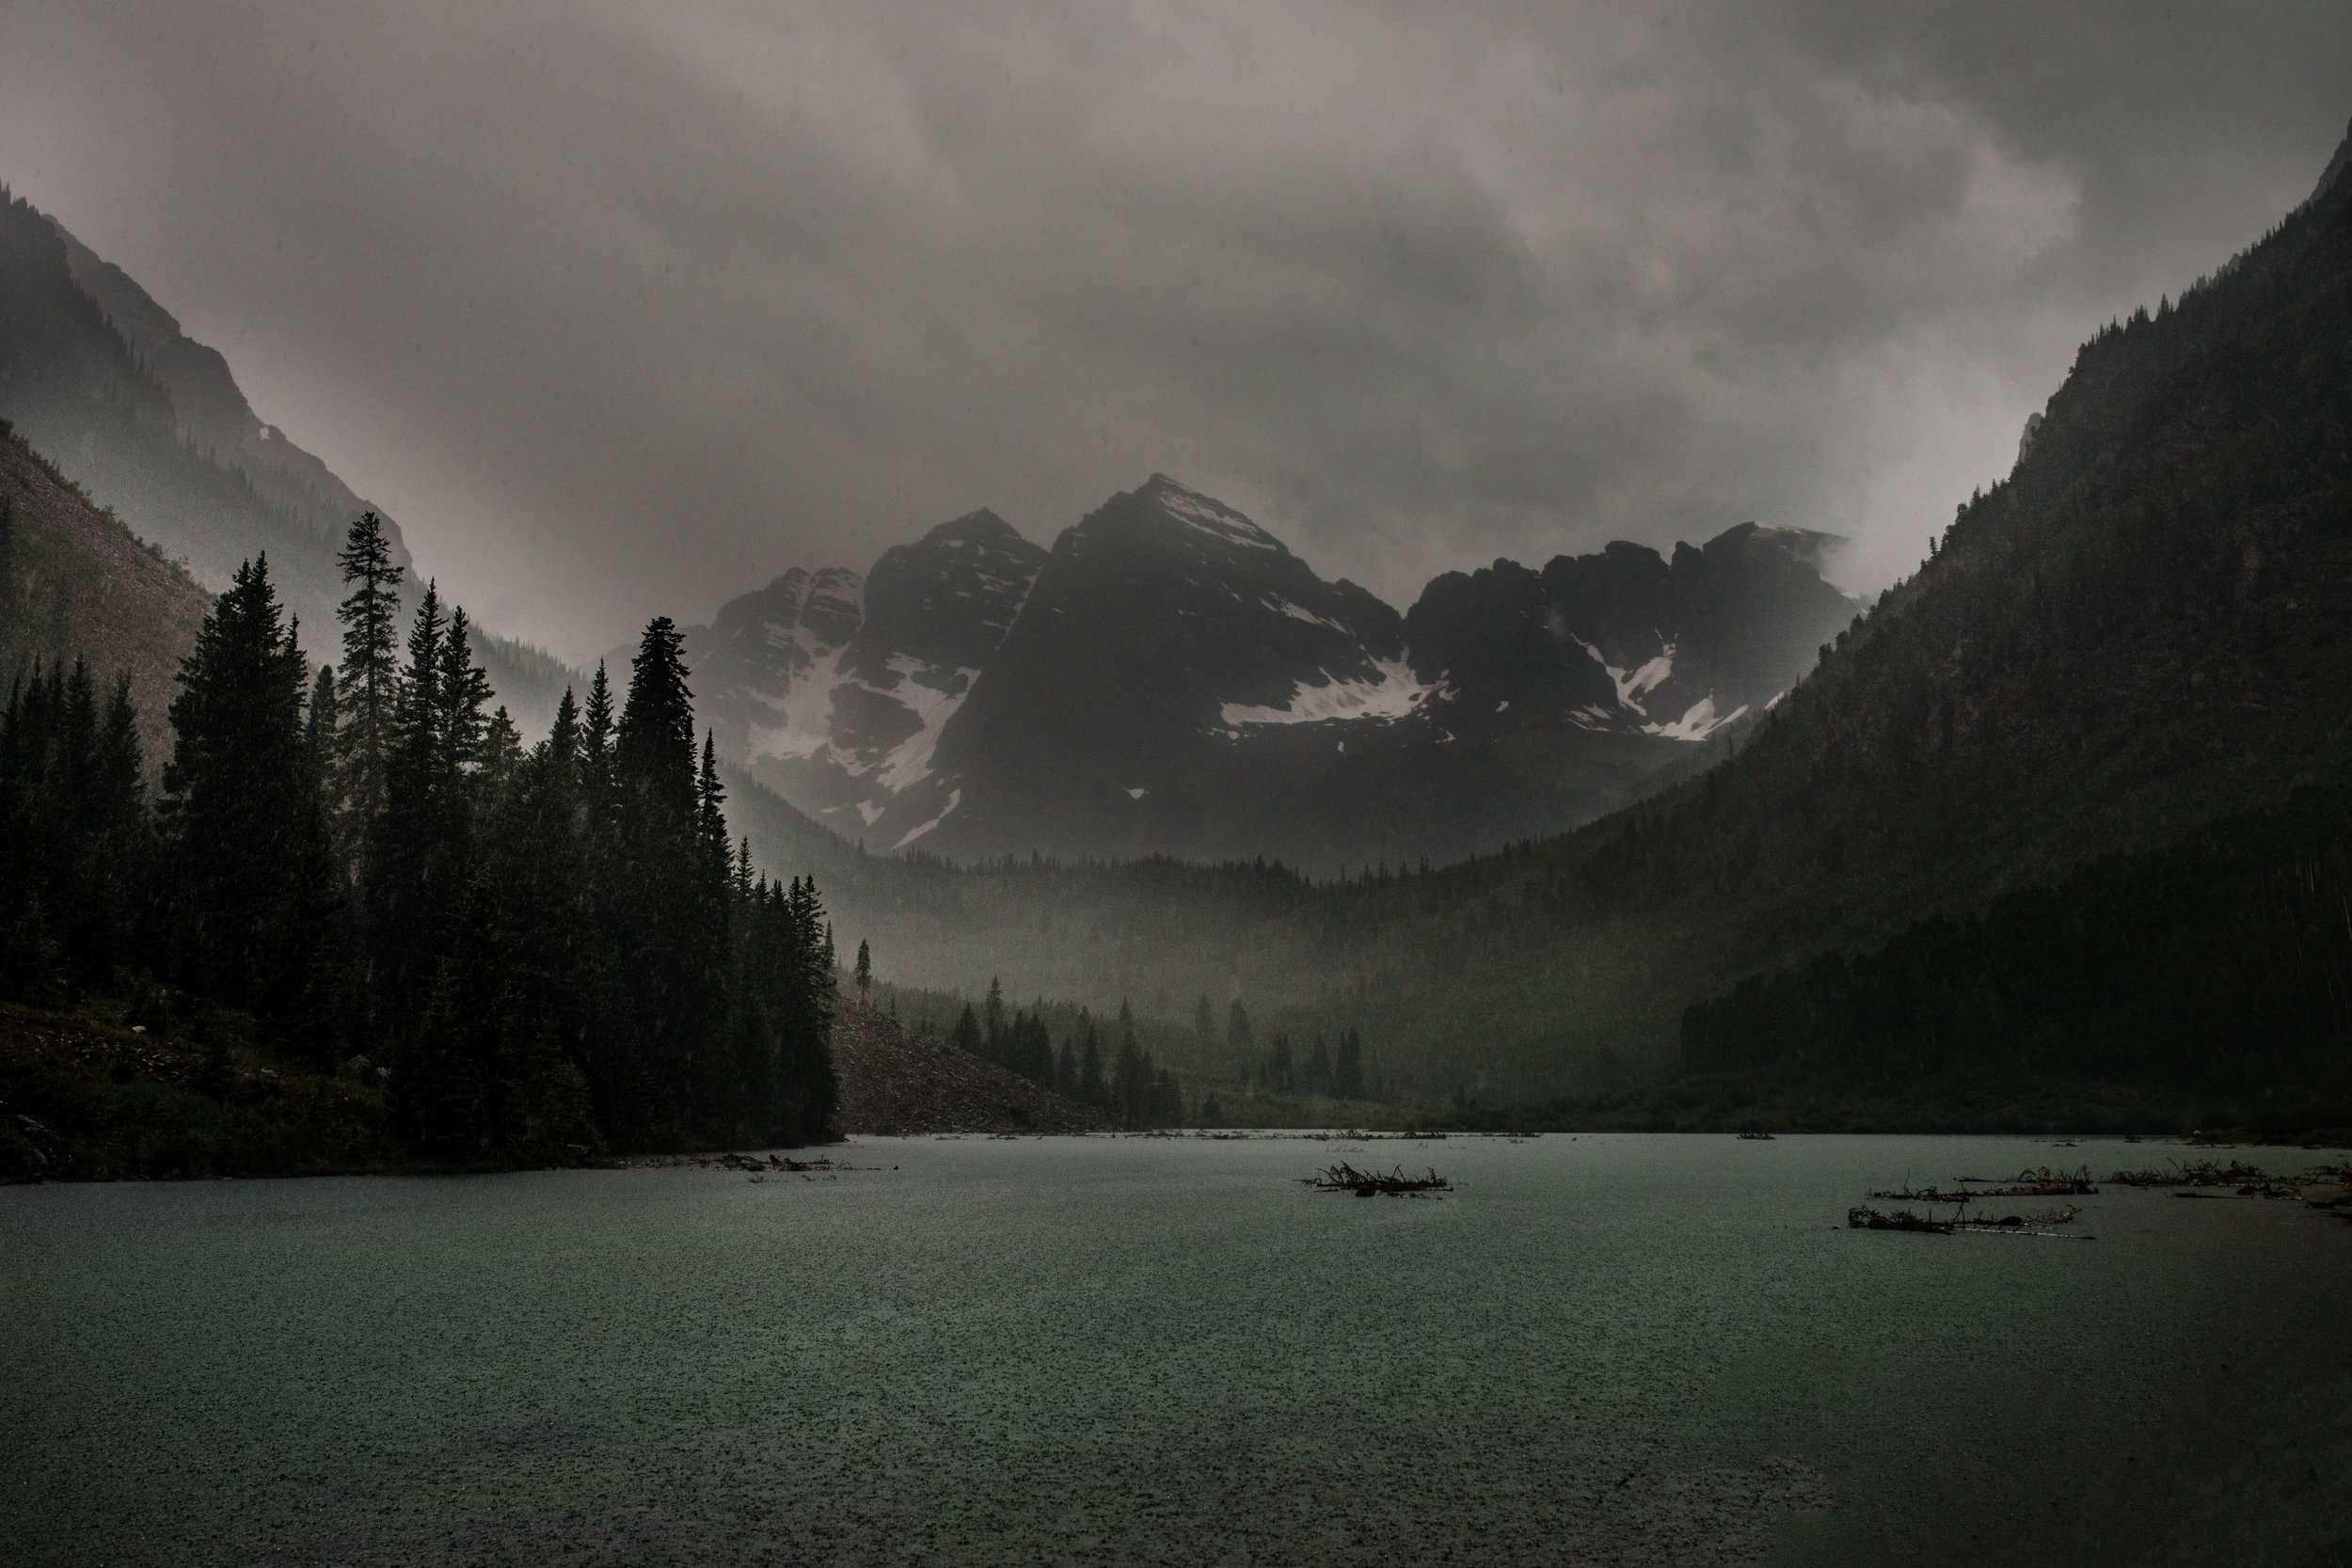 I love a good moody and foggy photo. It's almost as if Maroon Bells knew I was coming and gave me this gift!